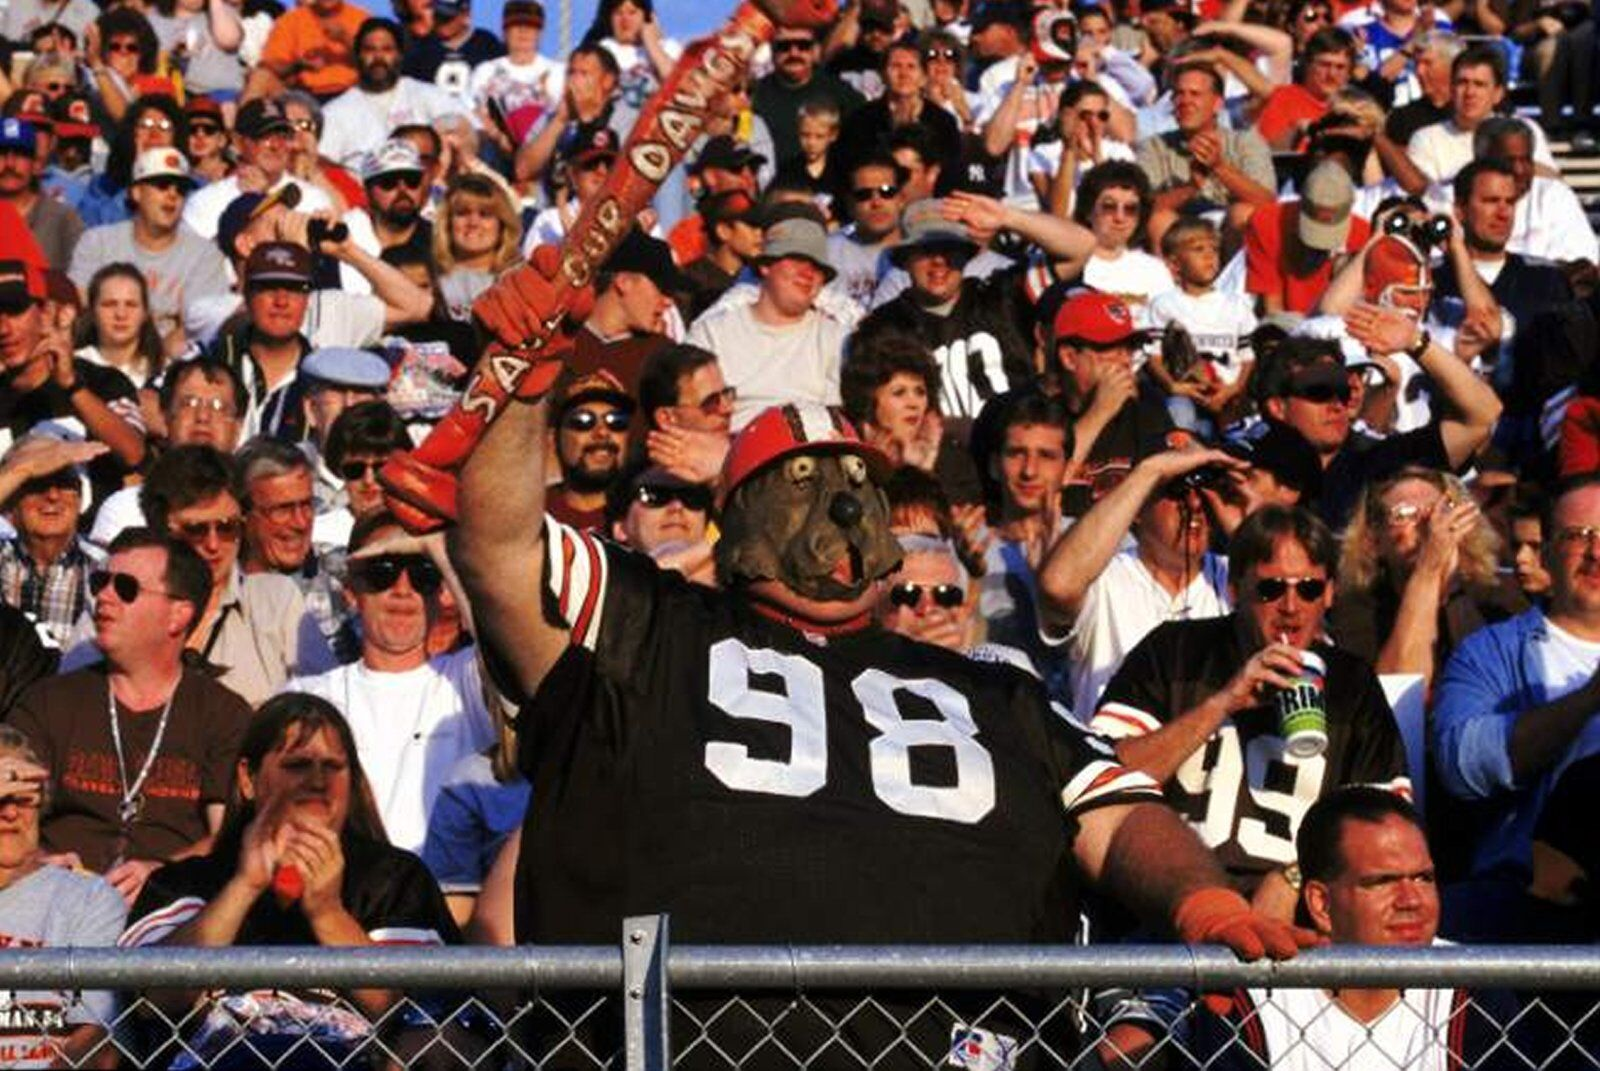 Cleveland Browns: NFL on FOX calls Cleveland fans one of the worst in NFL